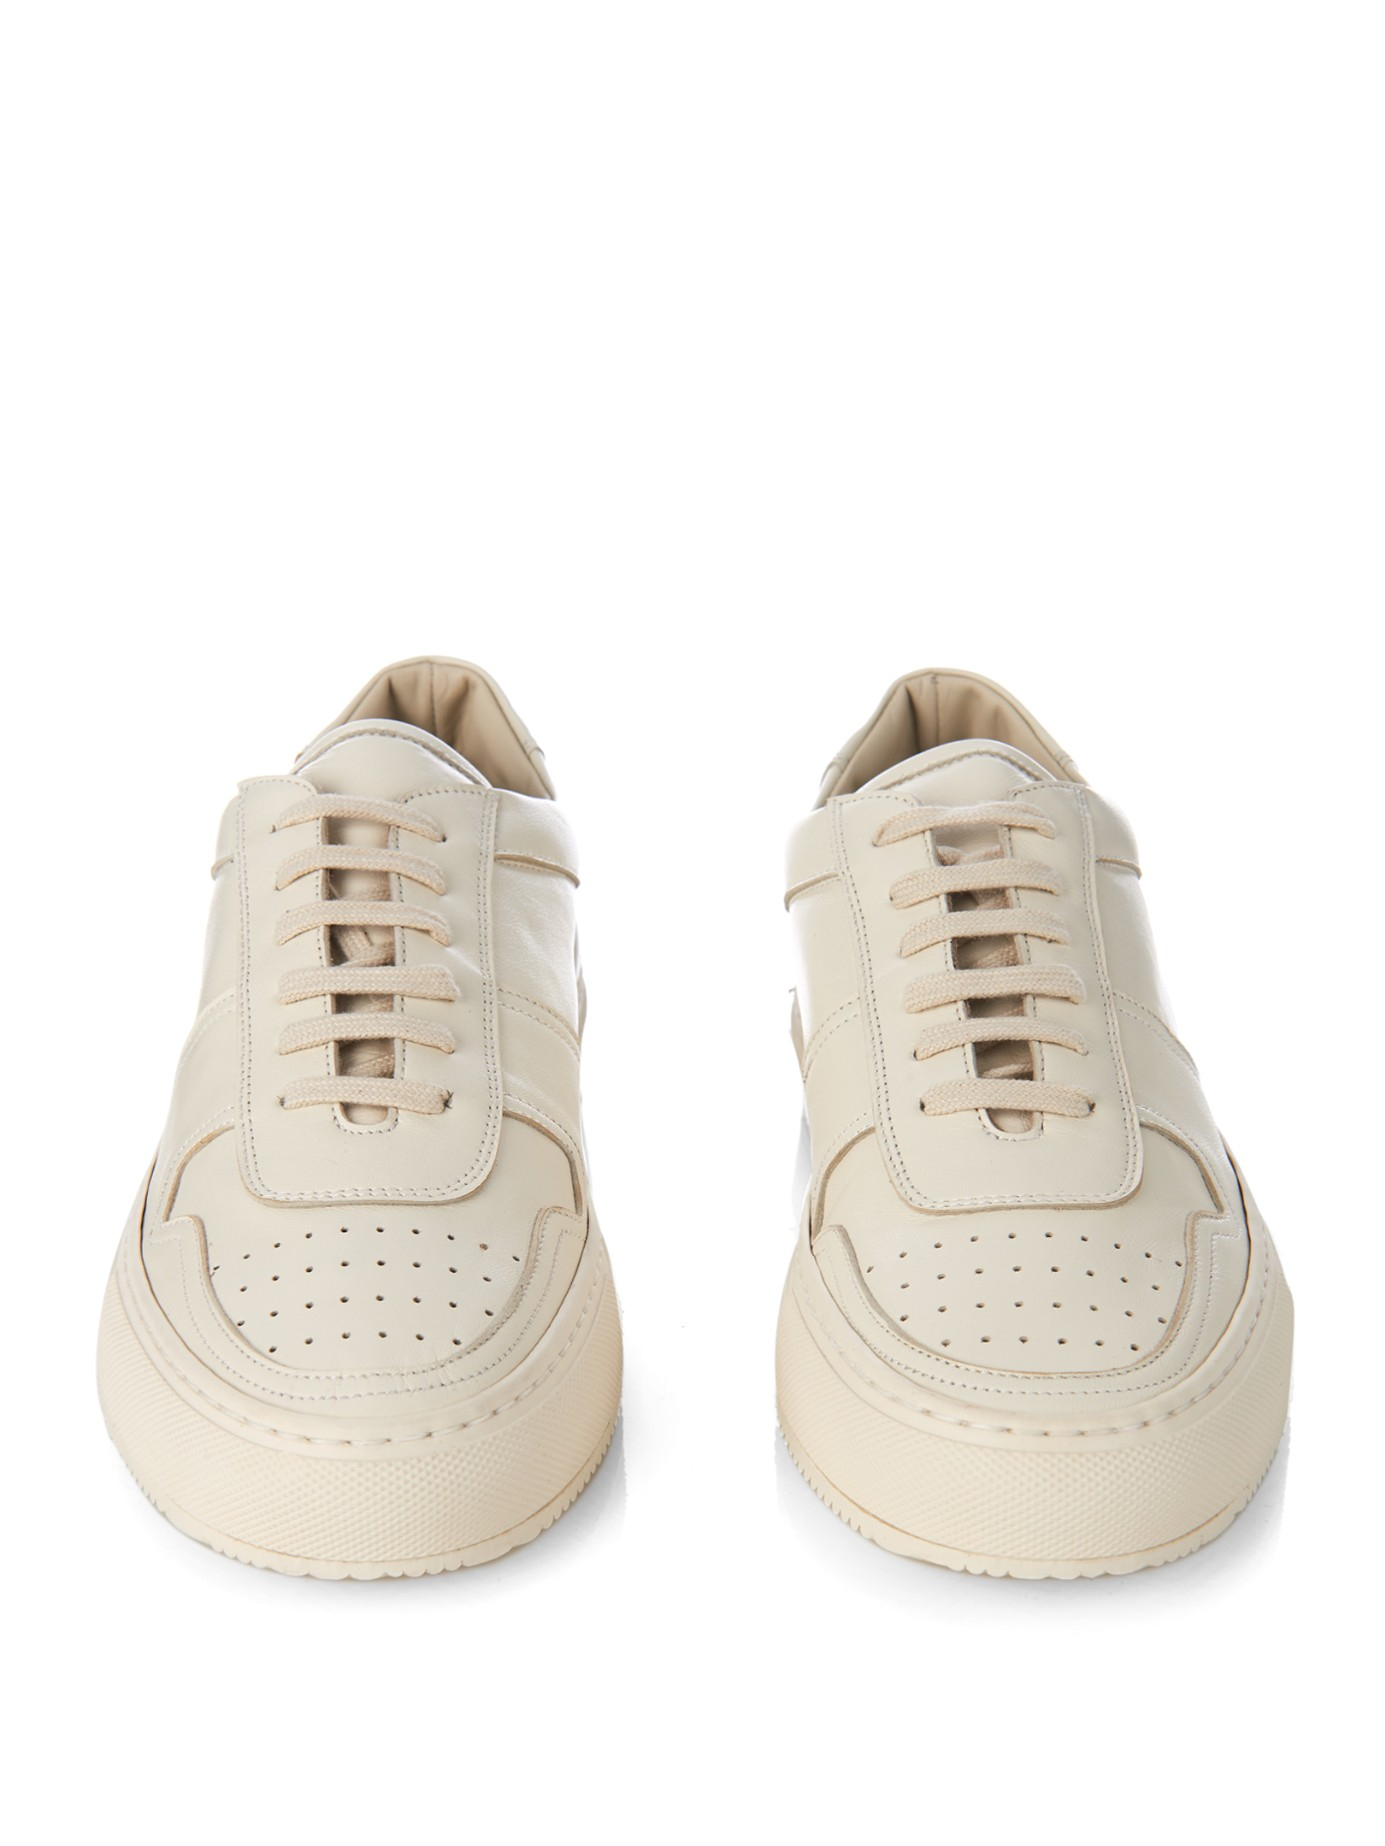 aa7efd50322a97 Common Projects B Ball Leather Low-Top Sneakers in Natural - Lyst